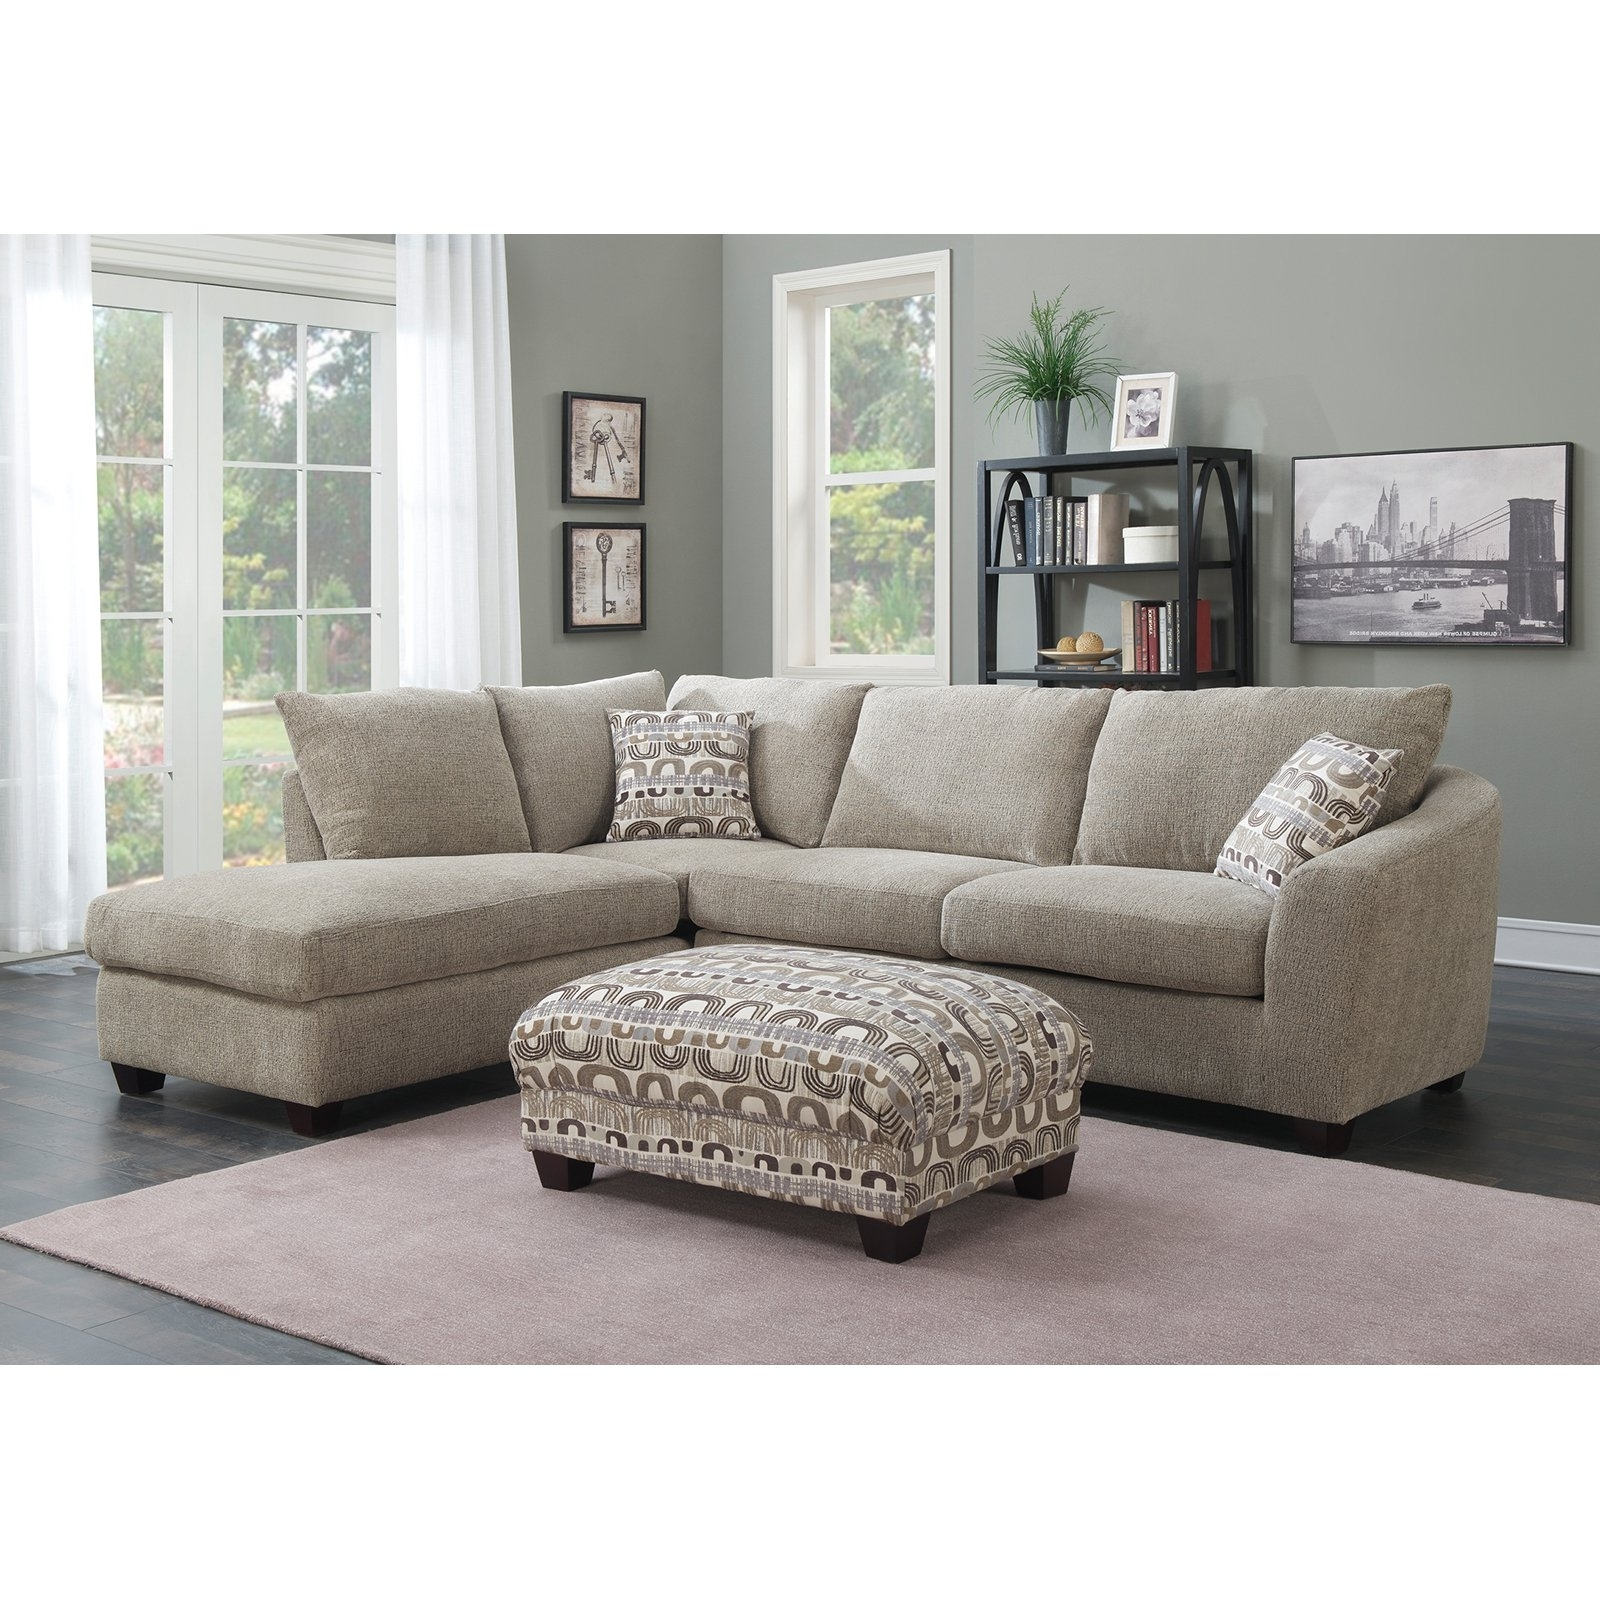 Most Recently Released Quebec Sectional Sofas With Regard To Off Agata Light Grey Sectional Sofas Gray Sofa Modern Fabric (View 8 of 20)